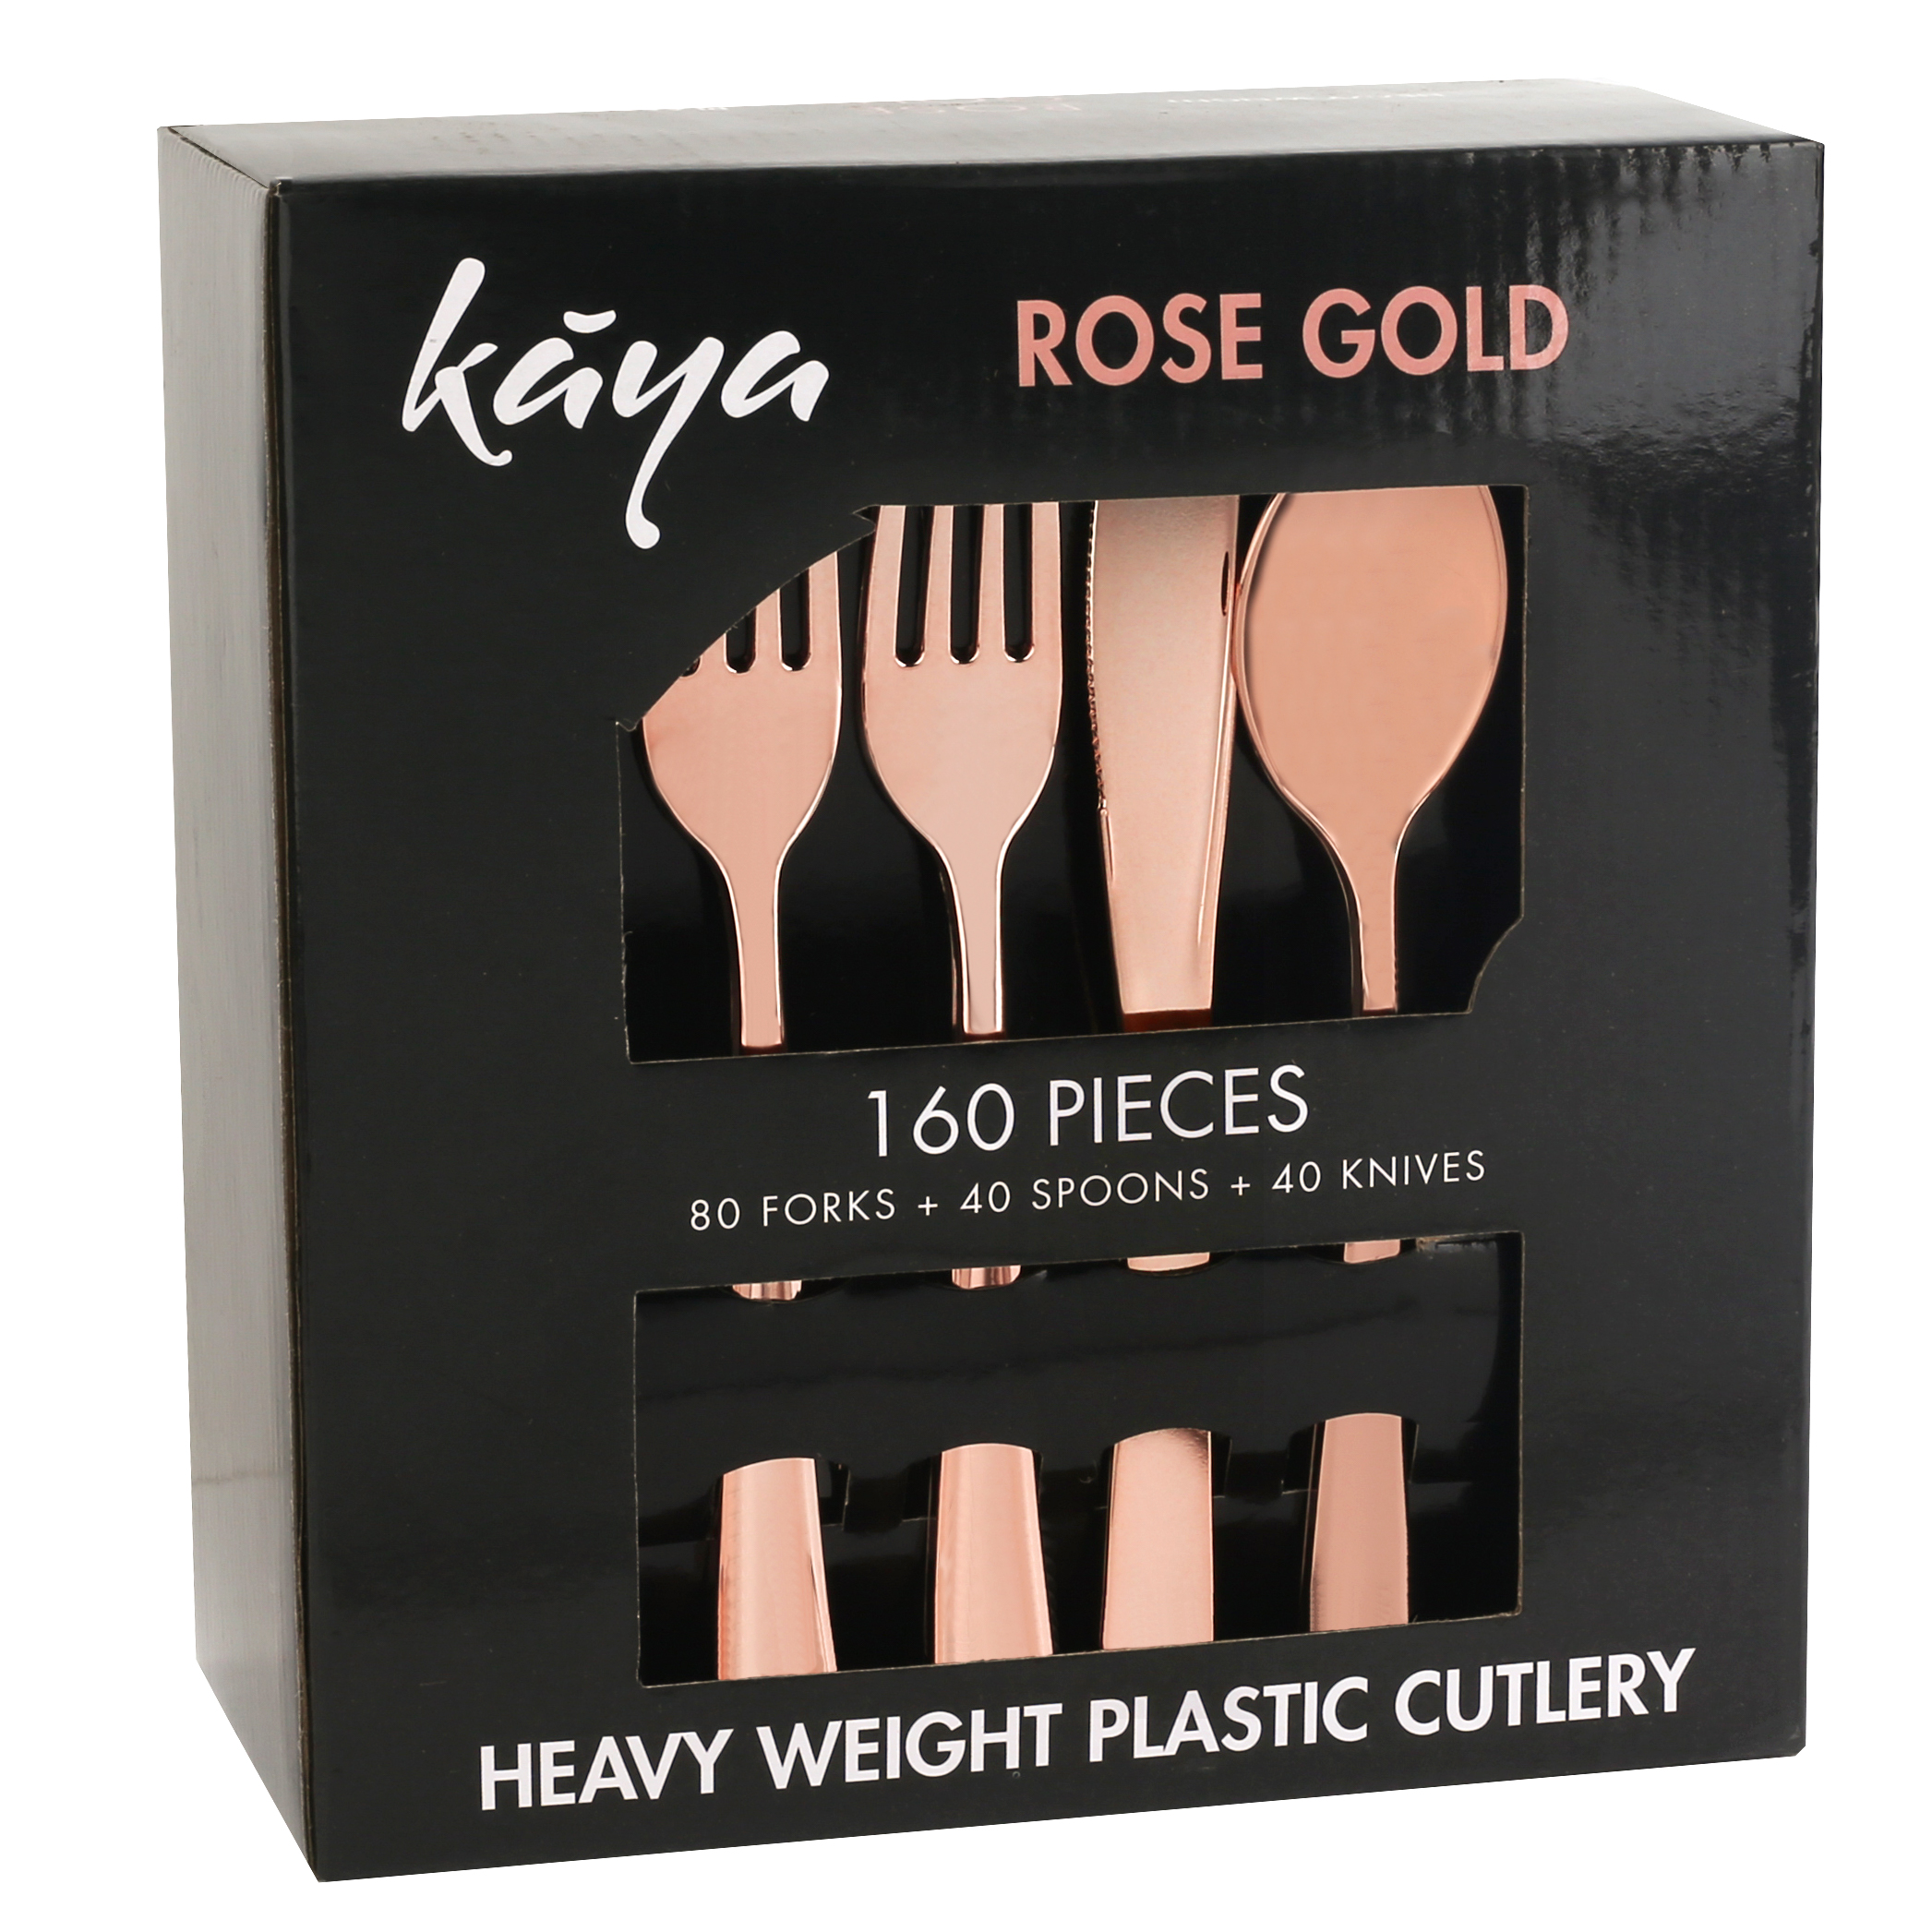 Kaya Collection - Disposable Plastic Rose Gold Silverware Cutlery, Shiny Metallic Flatware 80 Forks, 40 Knives and 40 Spoons (160 Pc)